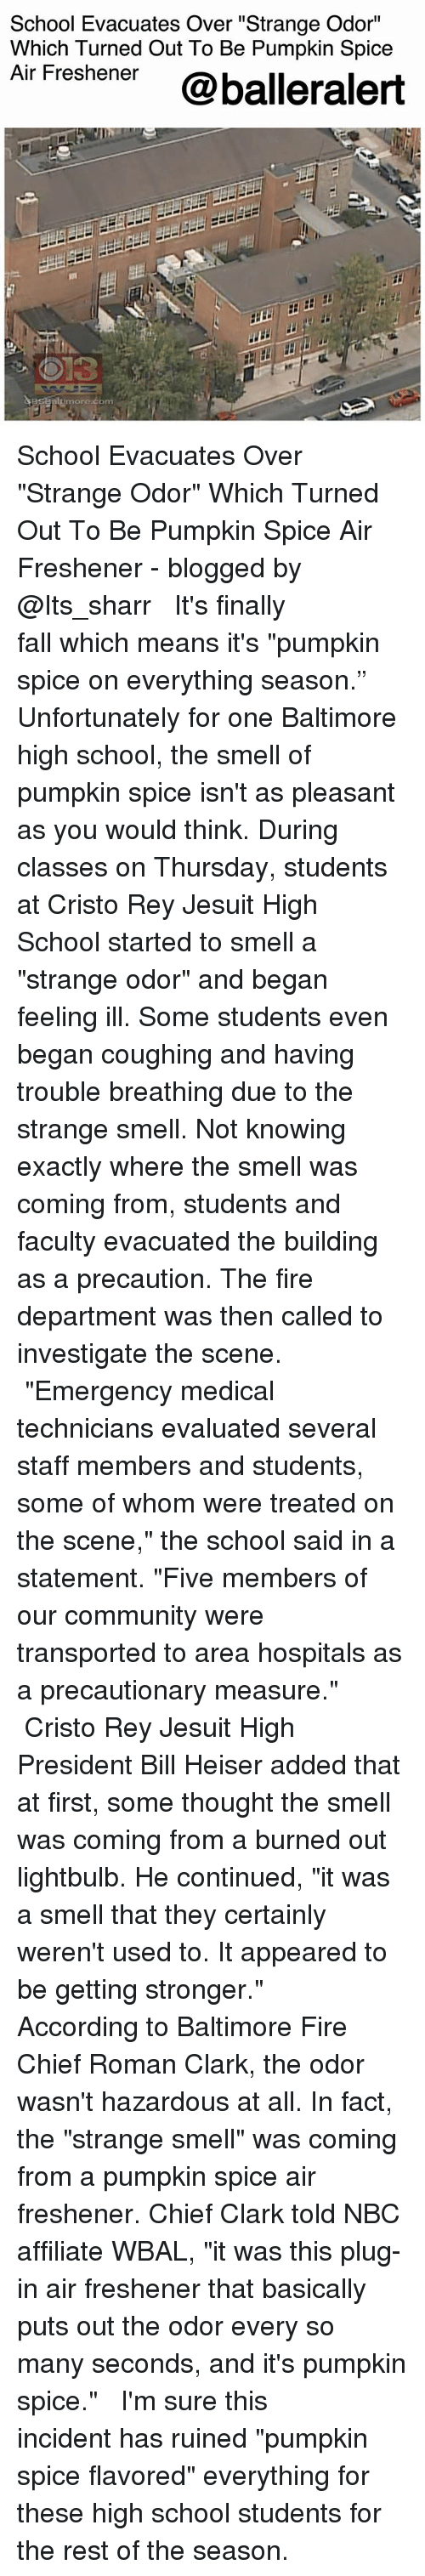 """Community, Fall, and Fire: School Evacuates Over """"Strange Odor""""  Which Turned Out To Be Pumpkin Spice  Air Freshener @balleralert  timore.com School Evacuates Over """"Strange Odor"""" Which Turned Out To Be Pumpkin Spice Air Freshener - blogged by @Its_sharr ⠀⠀⠀⠀⠀⠀⠀⠀ ⠀⠀⠀⠀⠀⠀⠀ It's finally fall which means it's """"pumpkin spice on everything season."""" Unfortunately for one Baltimore high school, the smell of pumpkin spice isn't as pleasant as you would think. During classes on Thursday, students at Cristo Rey Jesuit High School started to smell a """"strange odor"""" and began feeling ill. Some students even began coughing and having trouble breathing due to the strange smell. Not knowing exactly where the smell was coming from, students and faculty evacuated the building as a precaution. The fire department was then called to investigate the scene. ⠀⠀⠀⠀⠀⠀⠀⠀ ⠀⠀⠀⠀⠀⠀⠀ """"Emergency medical technicians evaluated several staff members and students, some of whom were treated on the scene,"""" the school said in a statement. """"Five members of our community were transported to area hospitals as a precautionary measure."""" ⠀⠀⠀⠀⠀⠀⠀⠀ ⠀⠀⠀⠀⠀⠀⠀ Cristo Rey Jesuit High President Bill Heiser added that at first, some thought the smell was coming from a burned out lightbulb. He continued, """"it was a smell that they certainly weren't used to. It appeared to be getting stronger."""" ⠀⠀⠀⠀⠀⠀⠀⠀ ⠀⠀⠀⠀⠀⠀⠀ According to Baltimore Fire Chief Roman Clark, the odor wasn't hazardous at all. In fact, the """"strange smell"""" was coming from a pumpkin spice air freshener. Chief Clark told NBC affiliate WBAL, """"it was this plug-in air freshener that basically puts out the odor every so many seconds, and it's pumpkin spice."""" ⠀⠀⠀⠀⠀⠀⠀⠀ ⠀⠀⠀⠀⠀⠀⠀ I'm sure this incident has ruined """"pumpkin spice flavored"""" everything for these high school students for the rest of the season."""